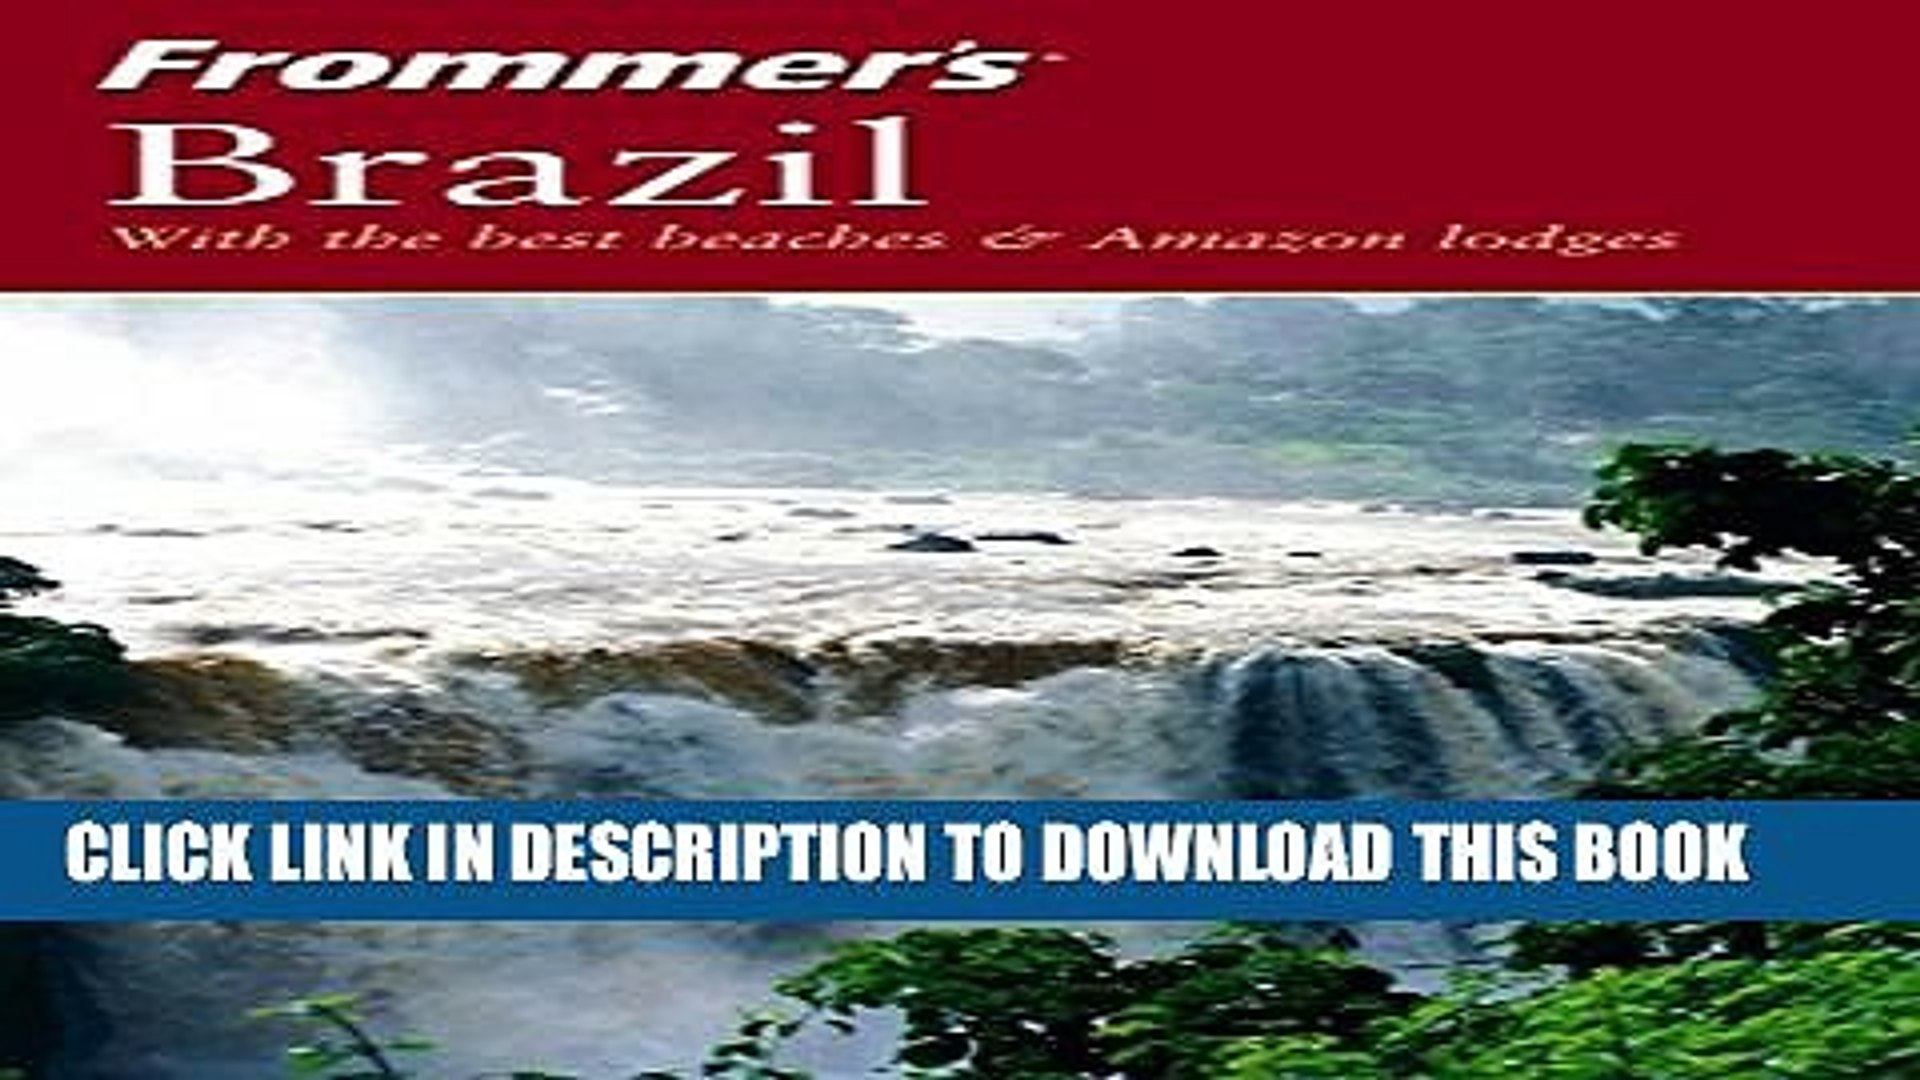 [PDF] Frommer s Brazil: With the Best Beaches   Amazon Lodges [Full Ebook]